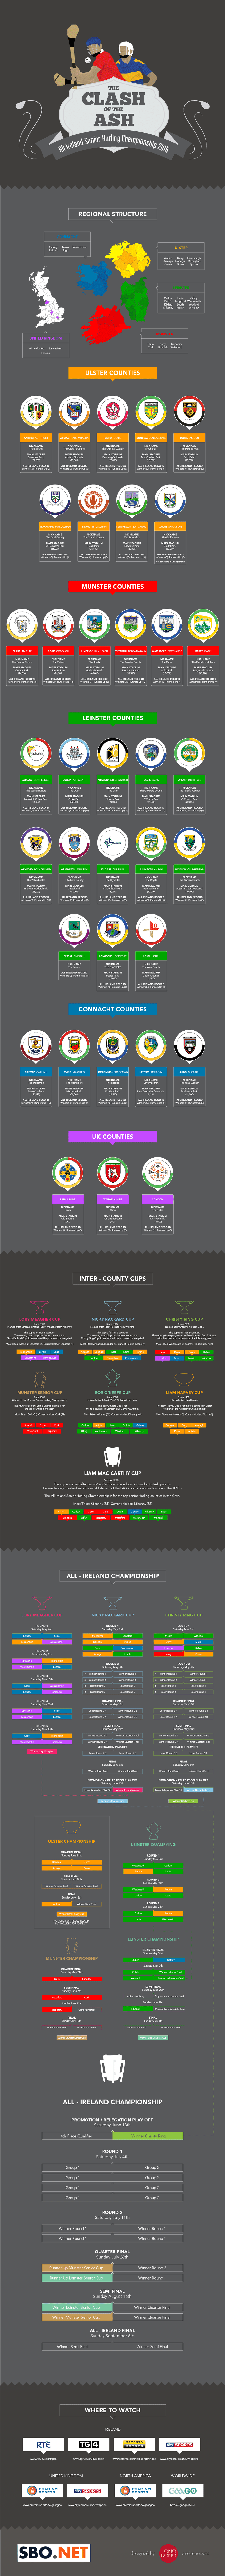 Infographic showing the structure of the All Ireland Senior Hurling Chamiponship 2015